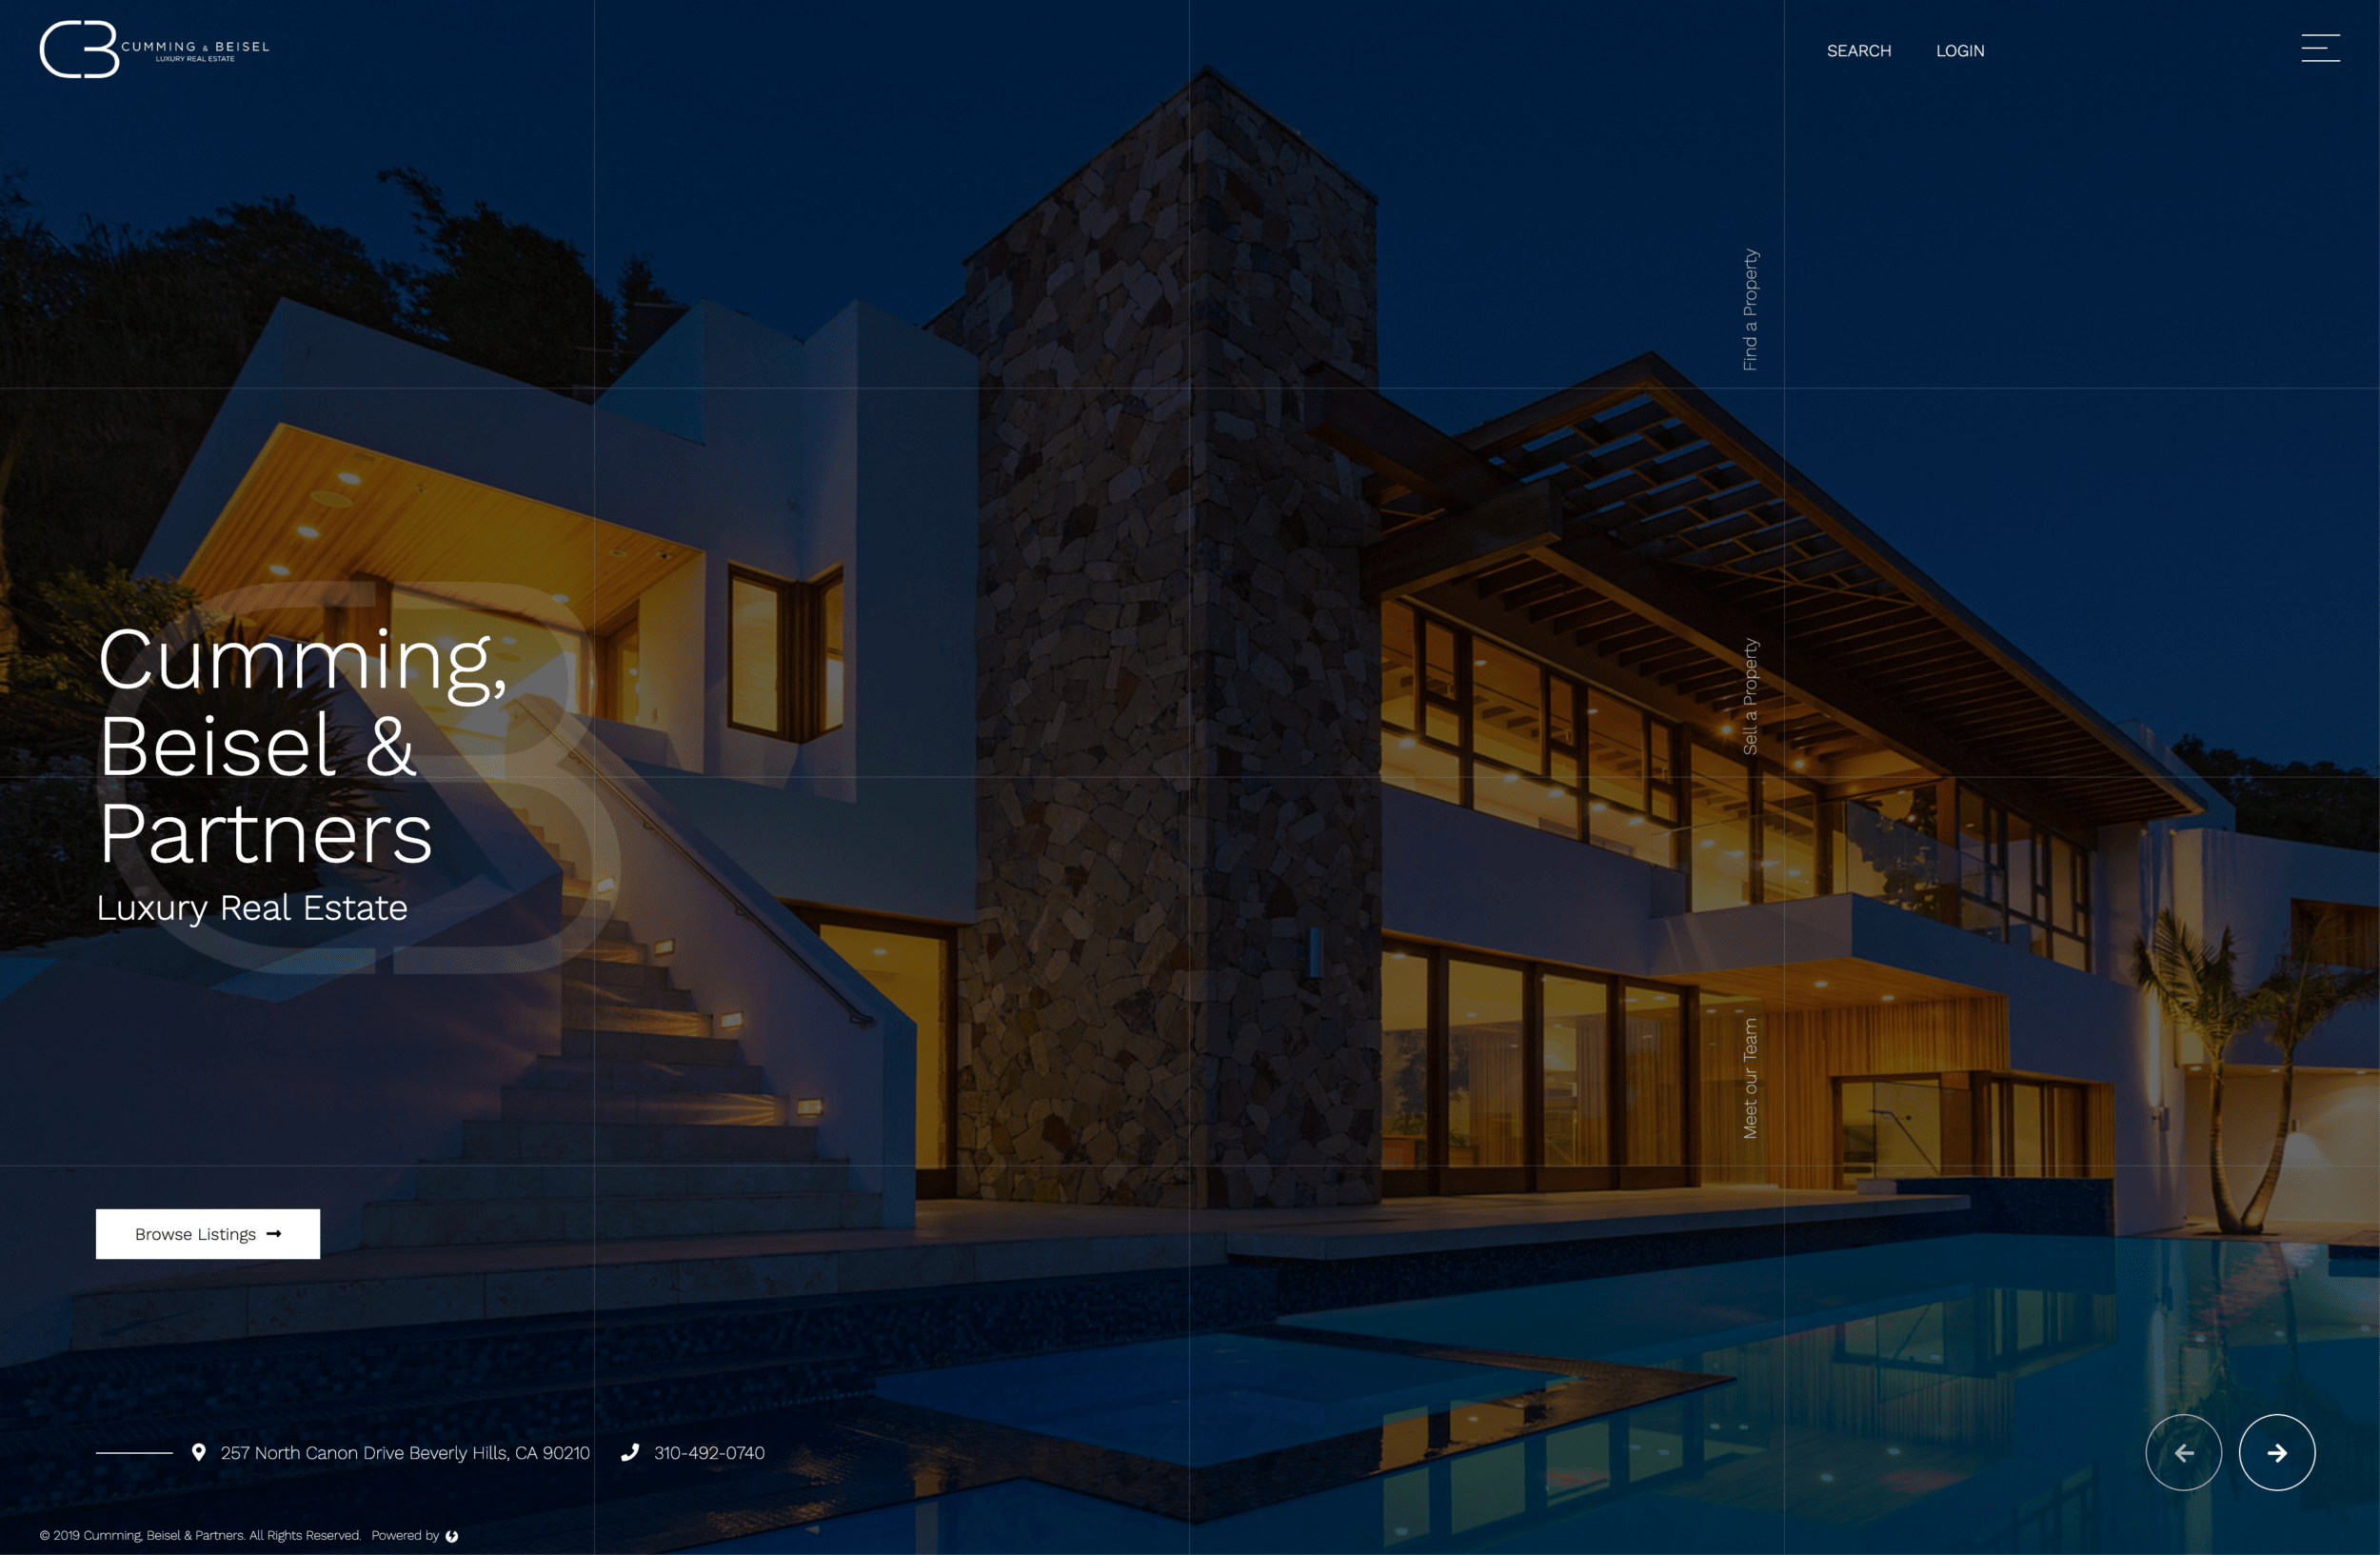 Cumming & Beisel Luxury Real Estate - A Custom Real Estate WordPress Website by imFORZA